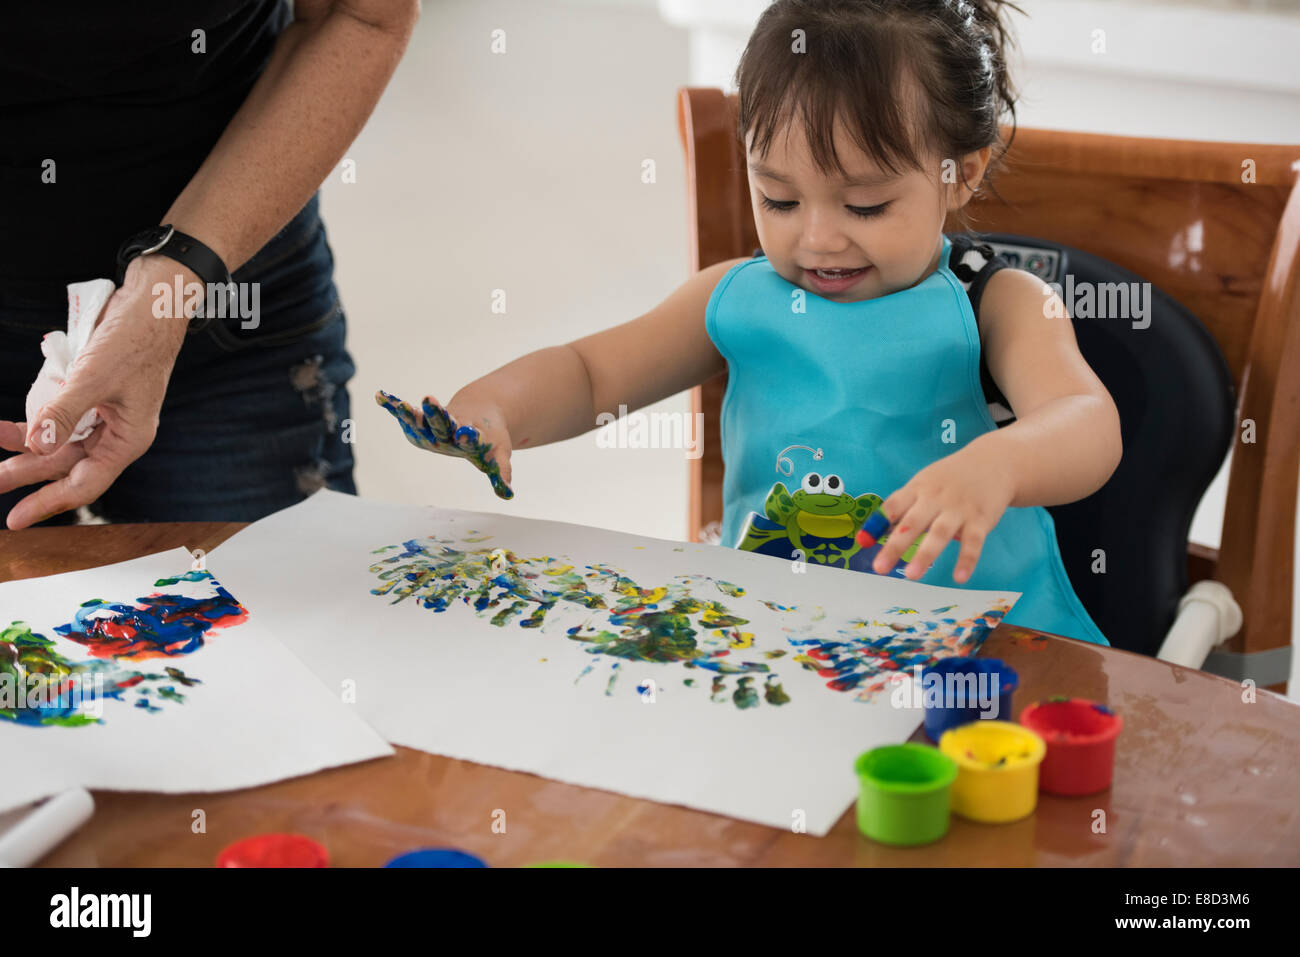 child finger painting - Stock Image